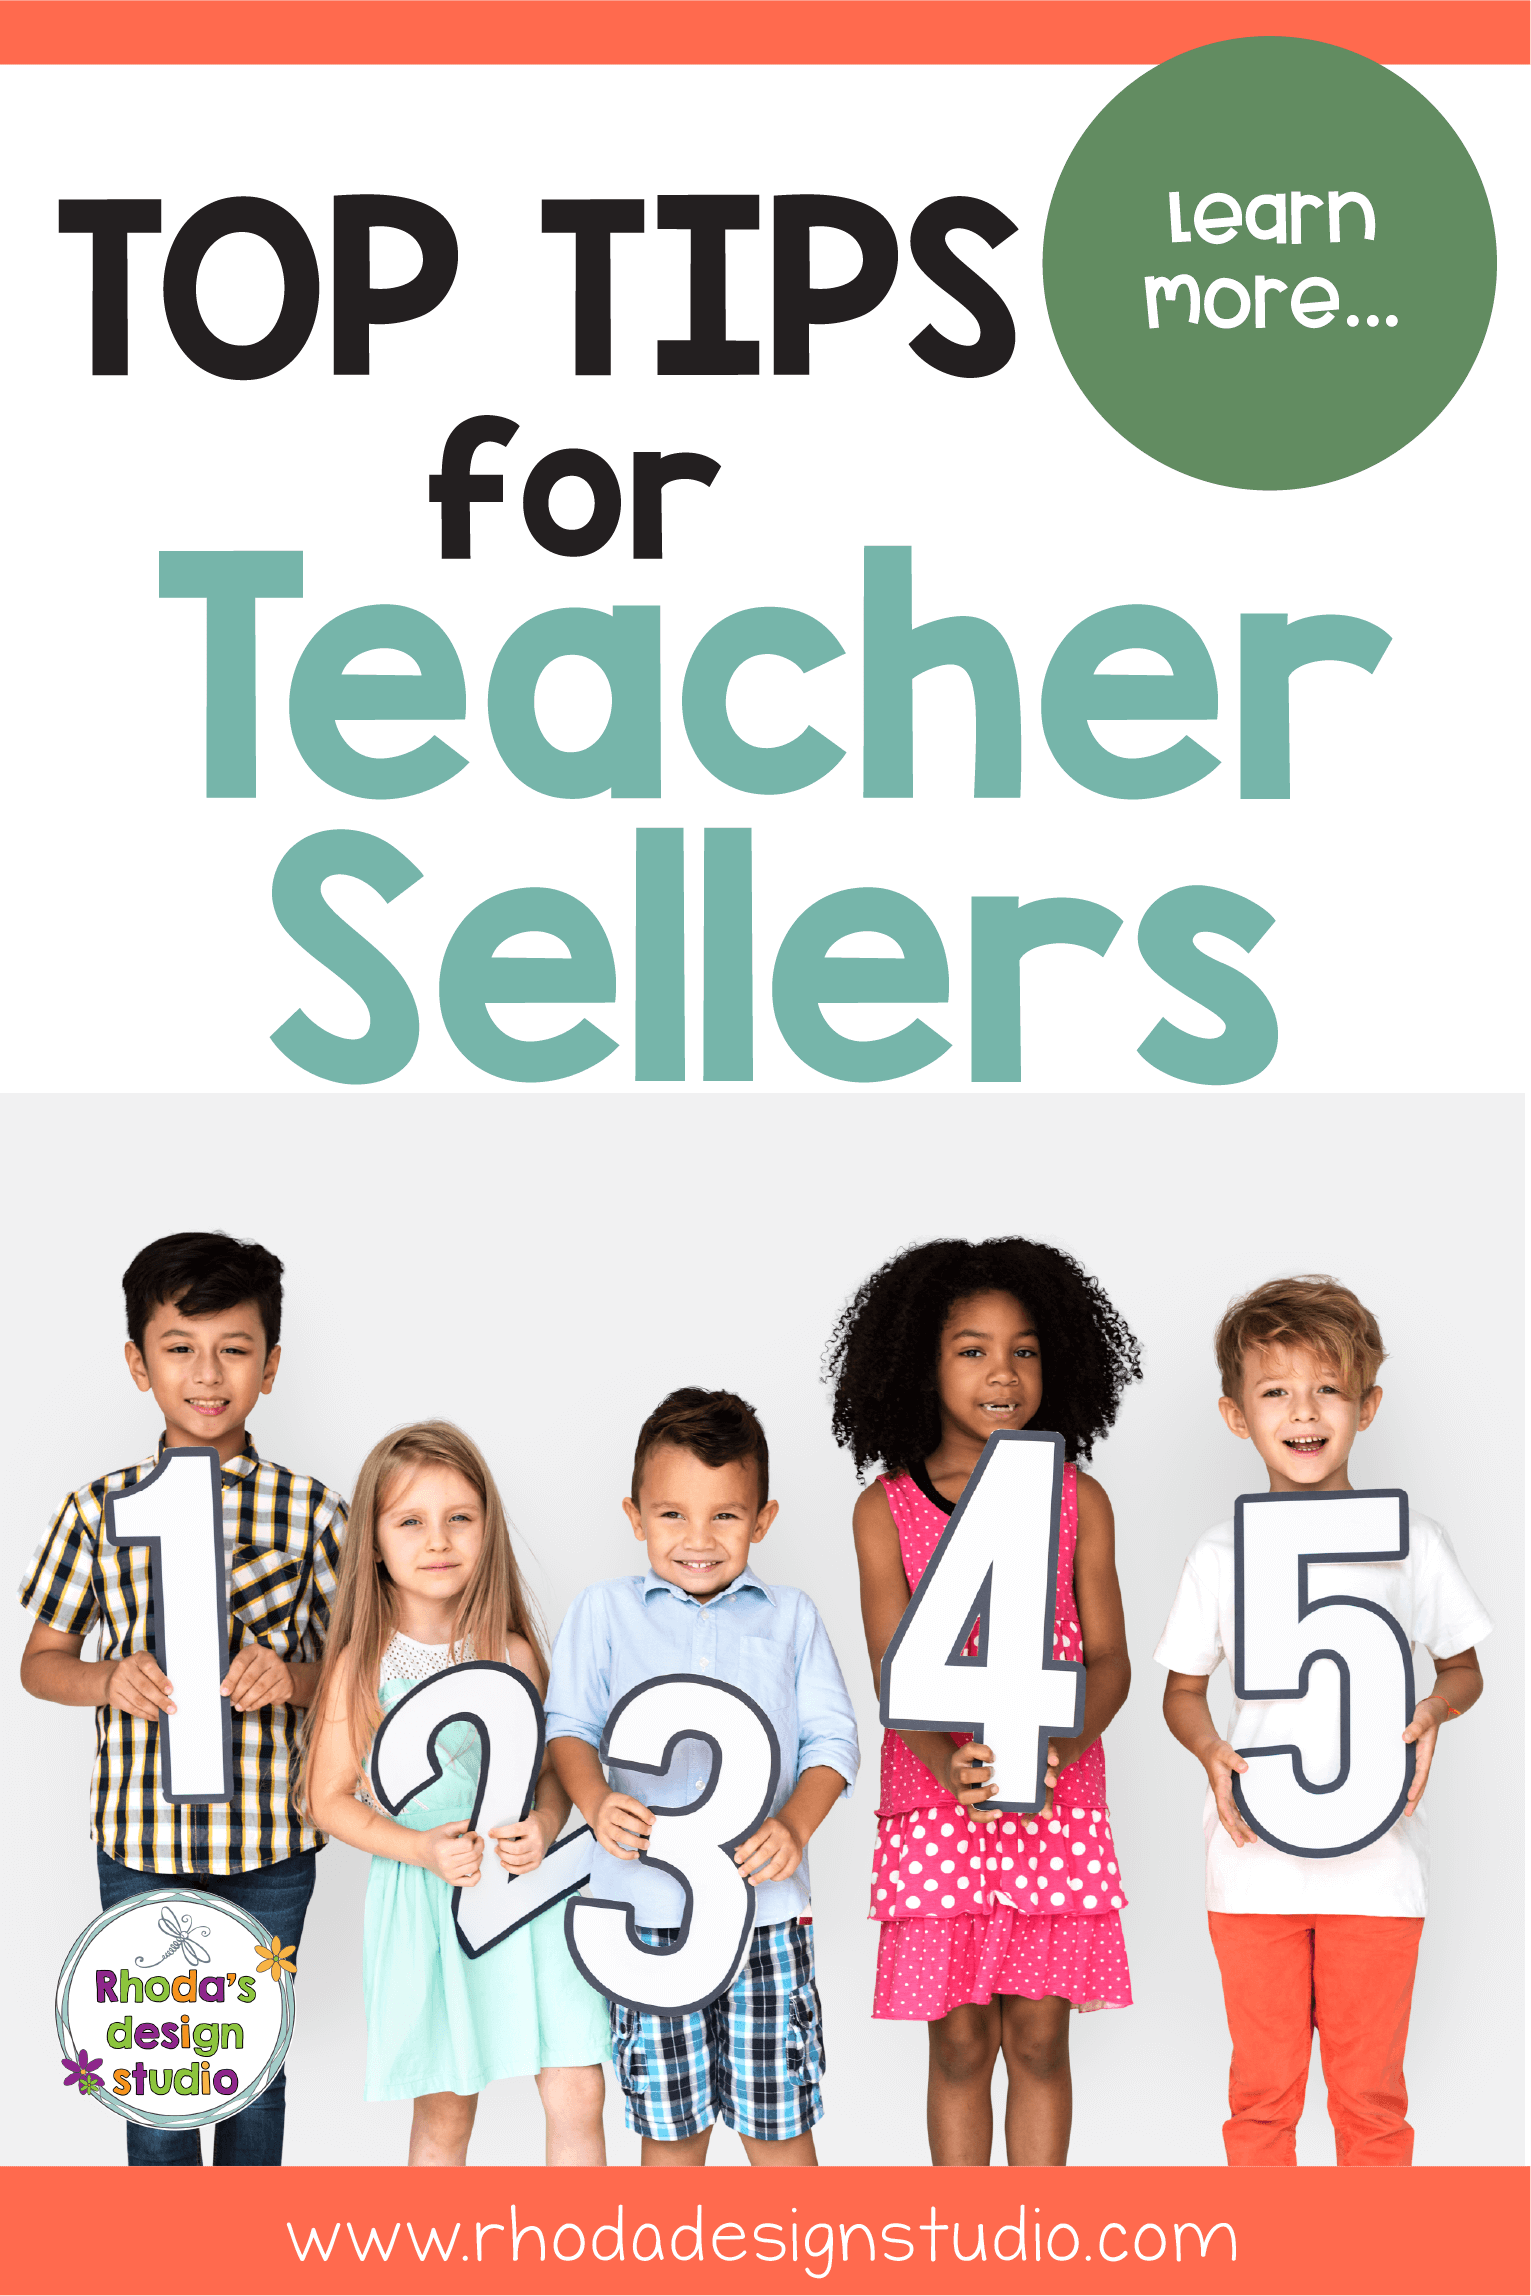 Learn to sell on Teachers Pay Teachers. Top Tips for New TpT Sellers. Make money online as a teacher by creating a side-hustle selling lesson plans. Rhoda Design Studio #rhodadesignstudio